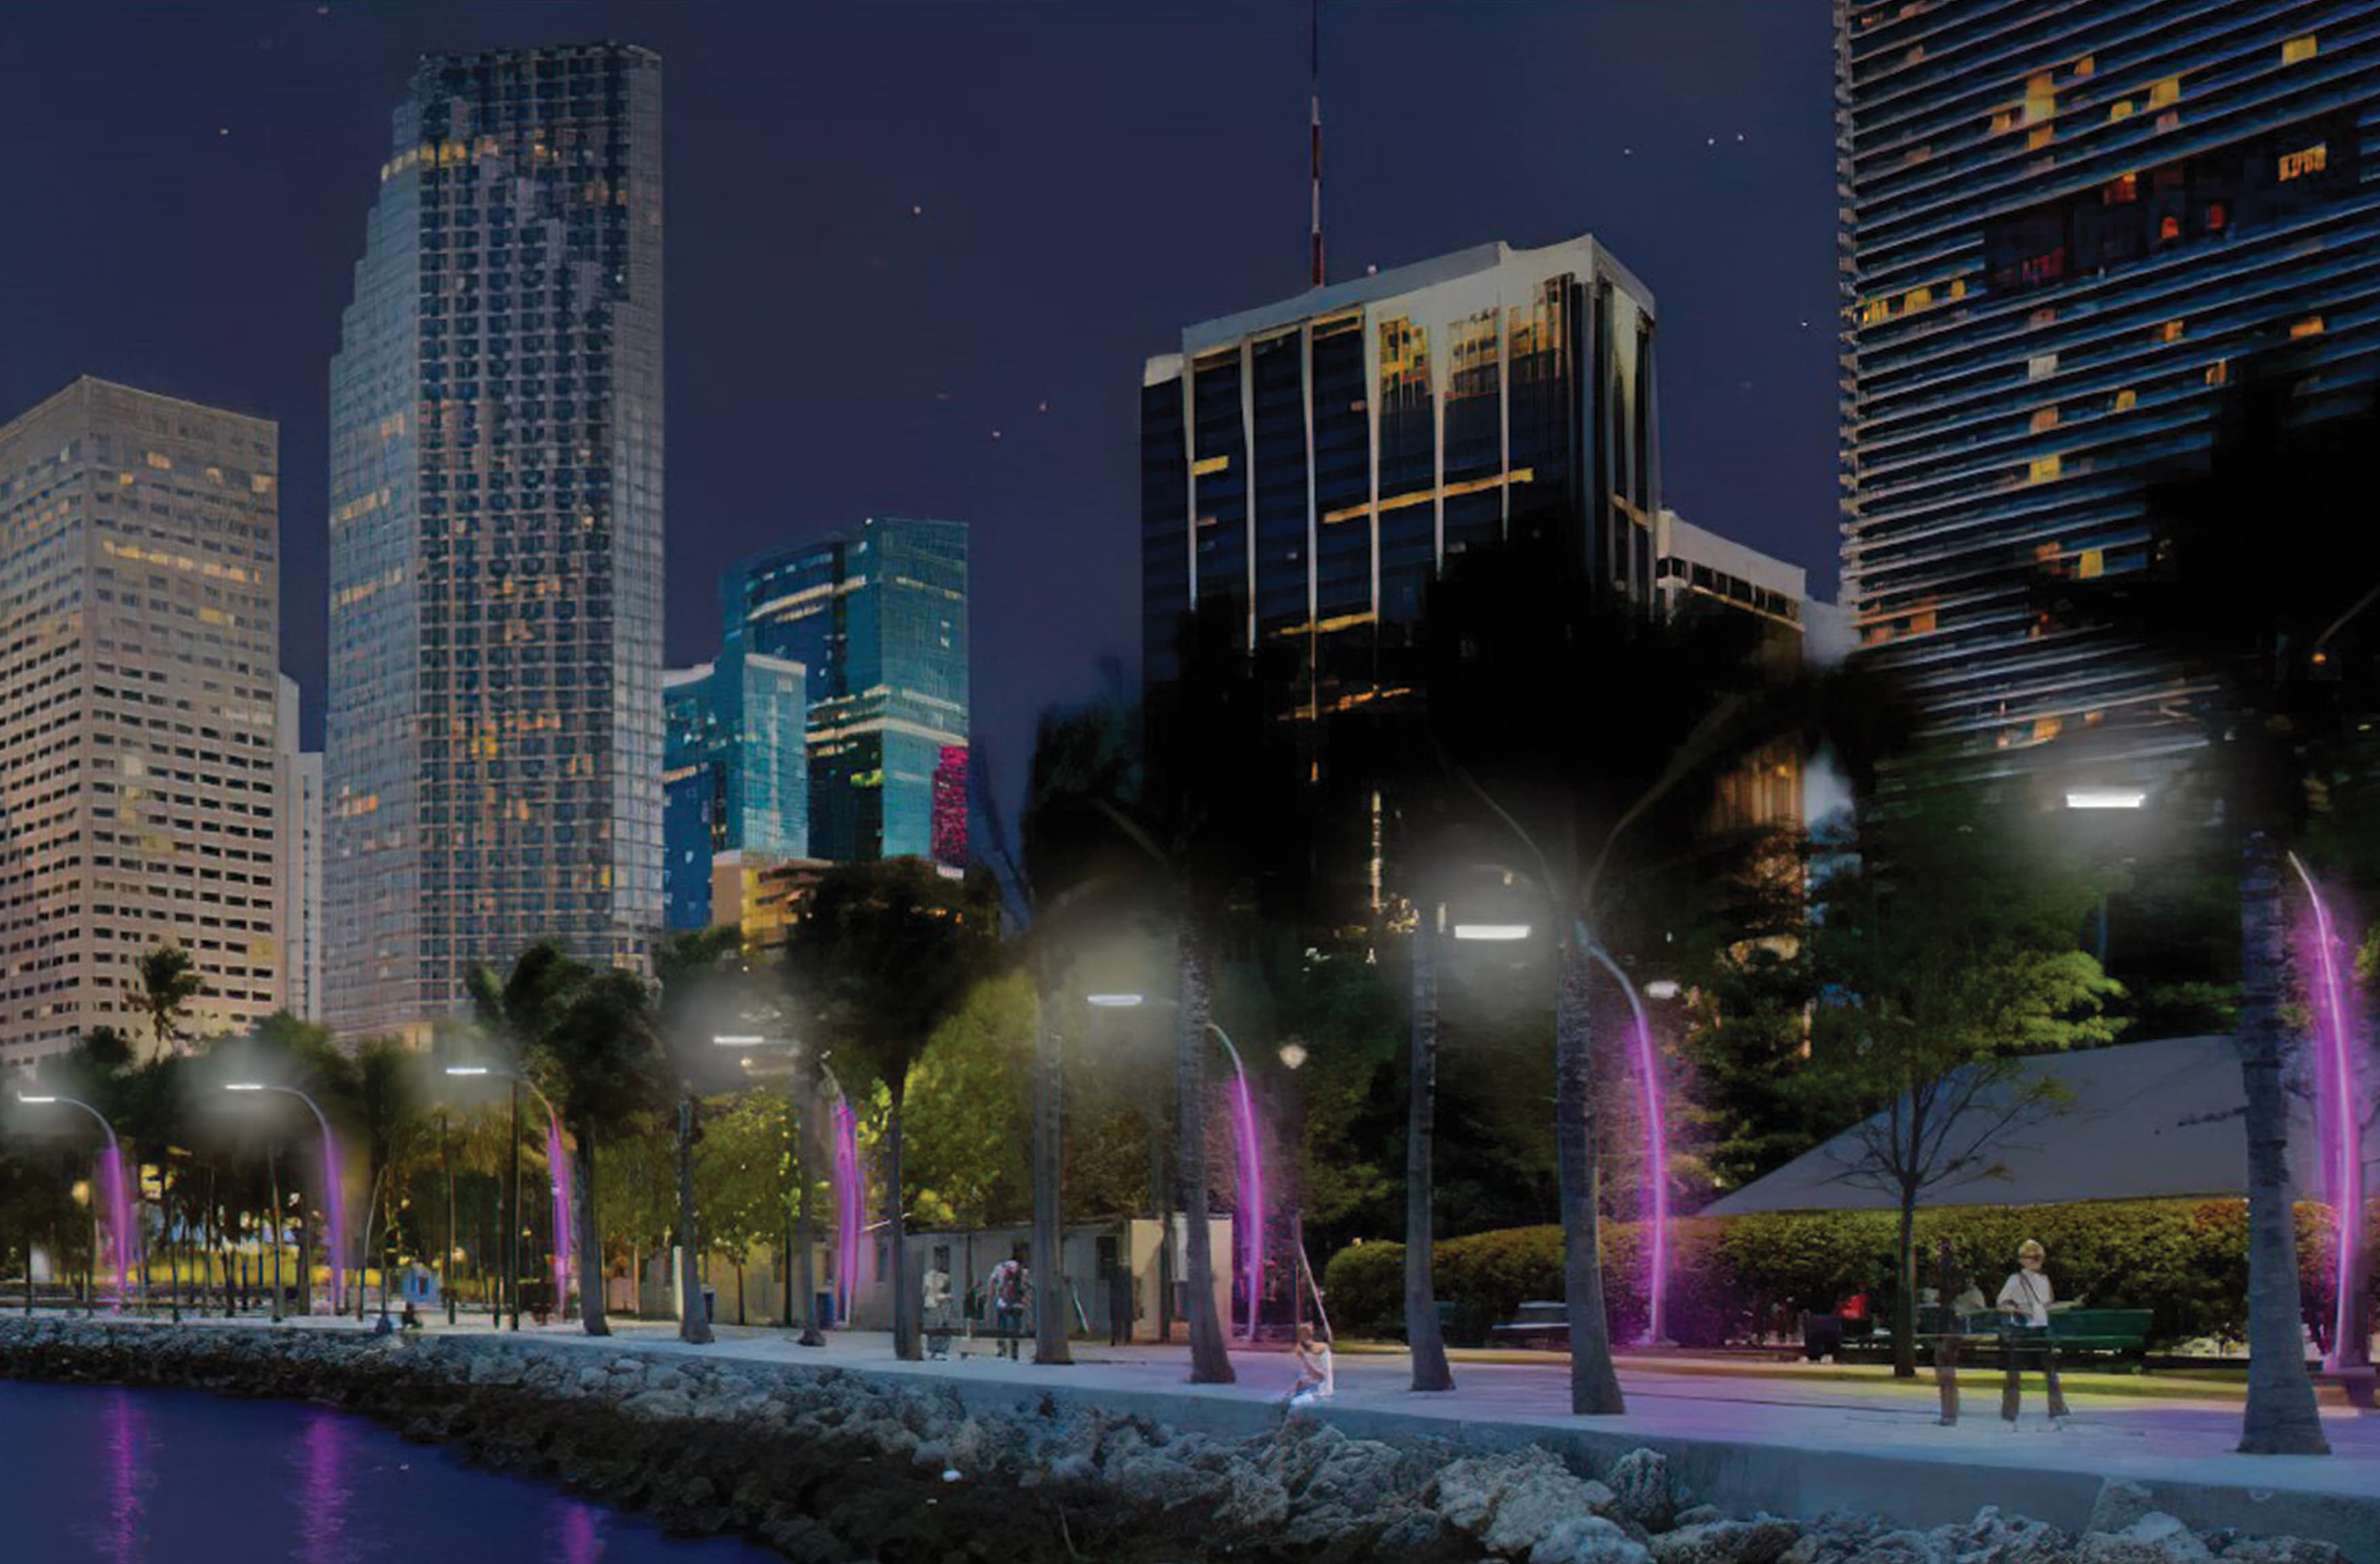 A nighttime conceptual rendering showing illuminated light poles along the water's edge.